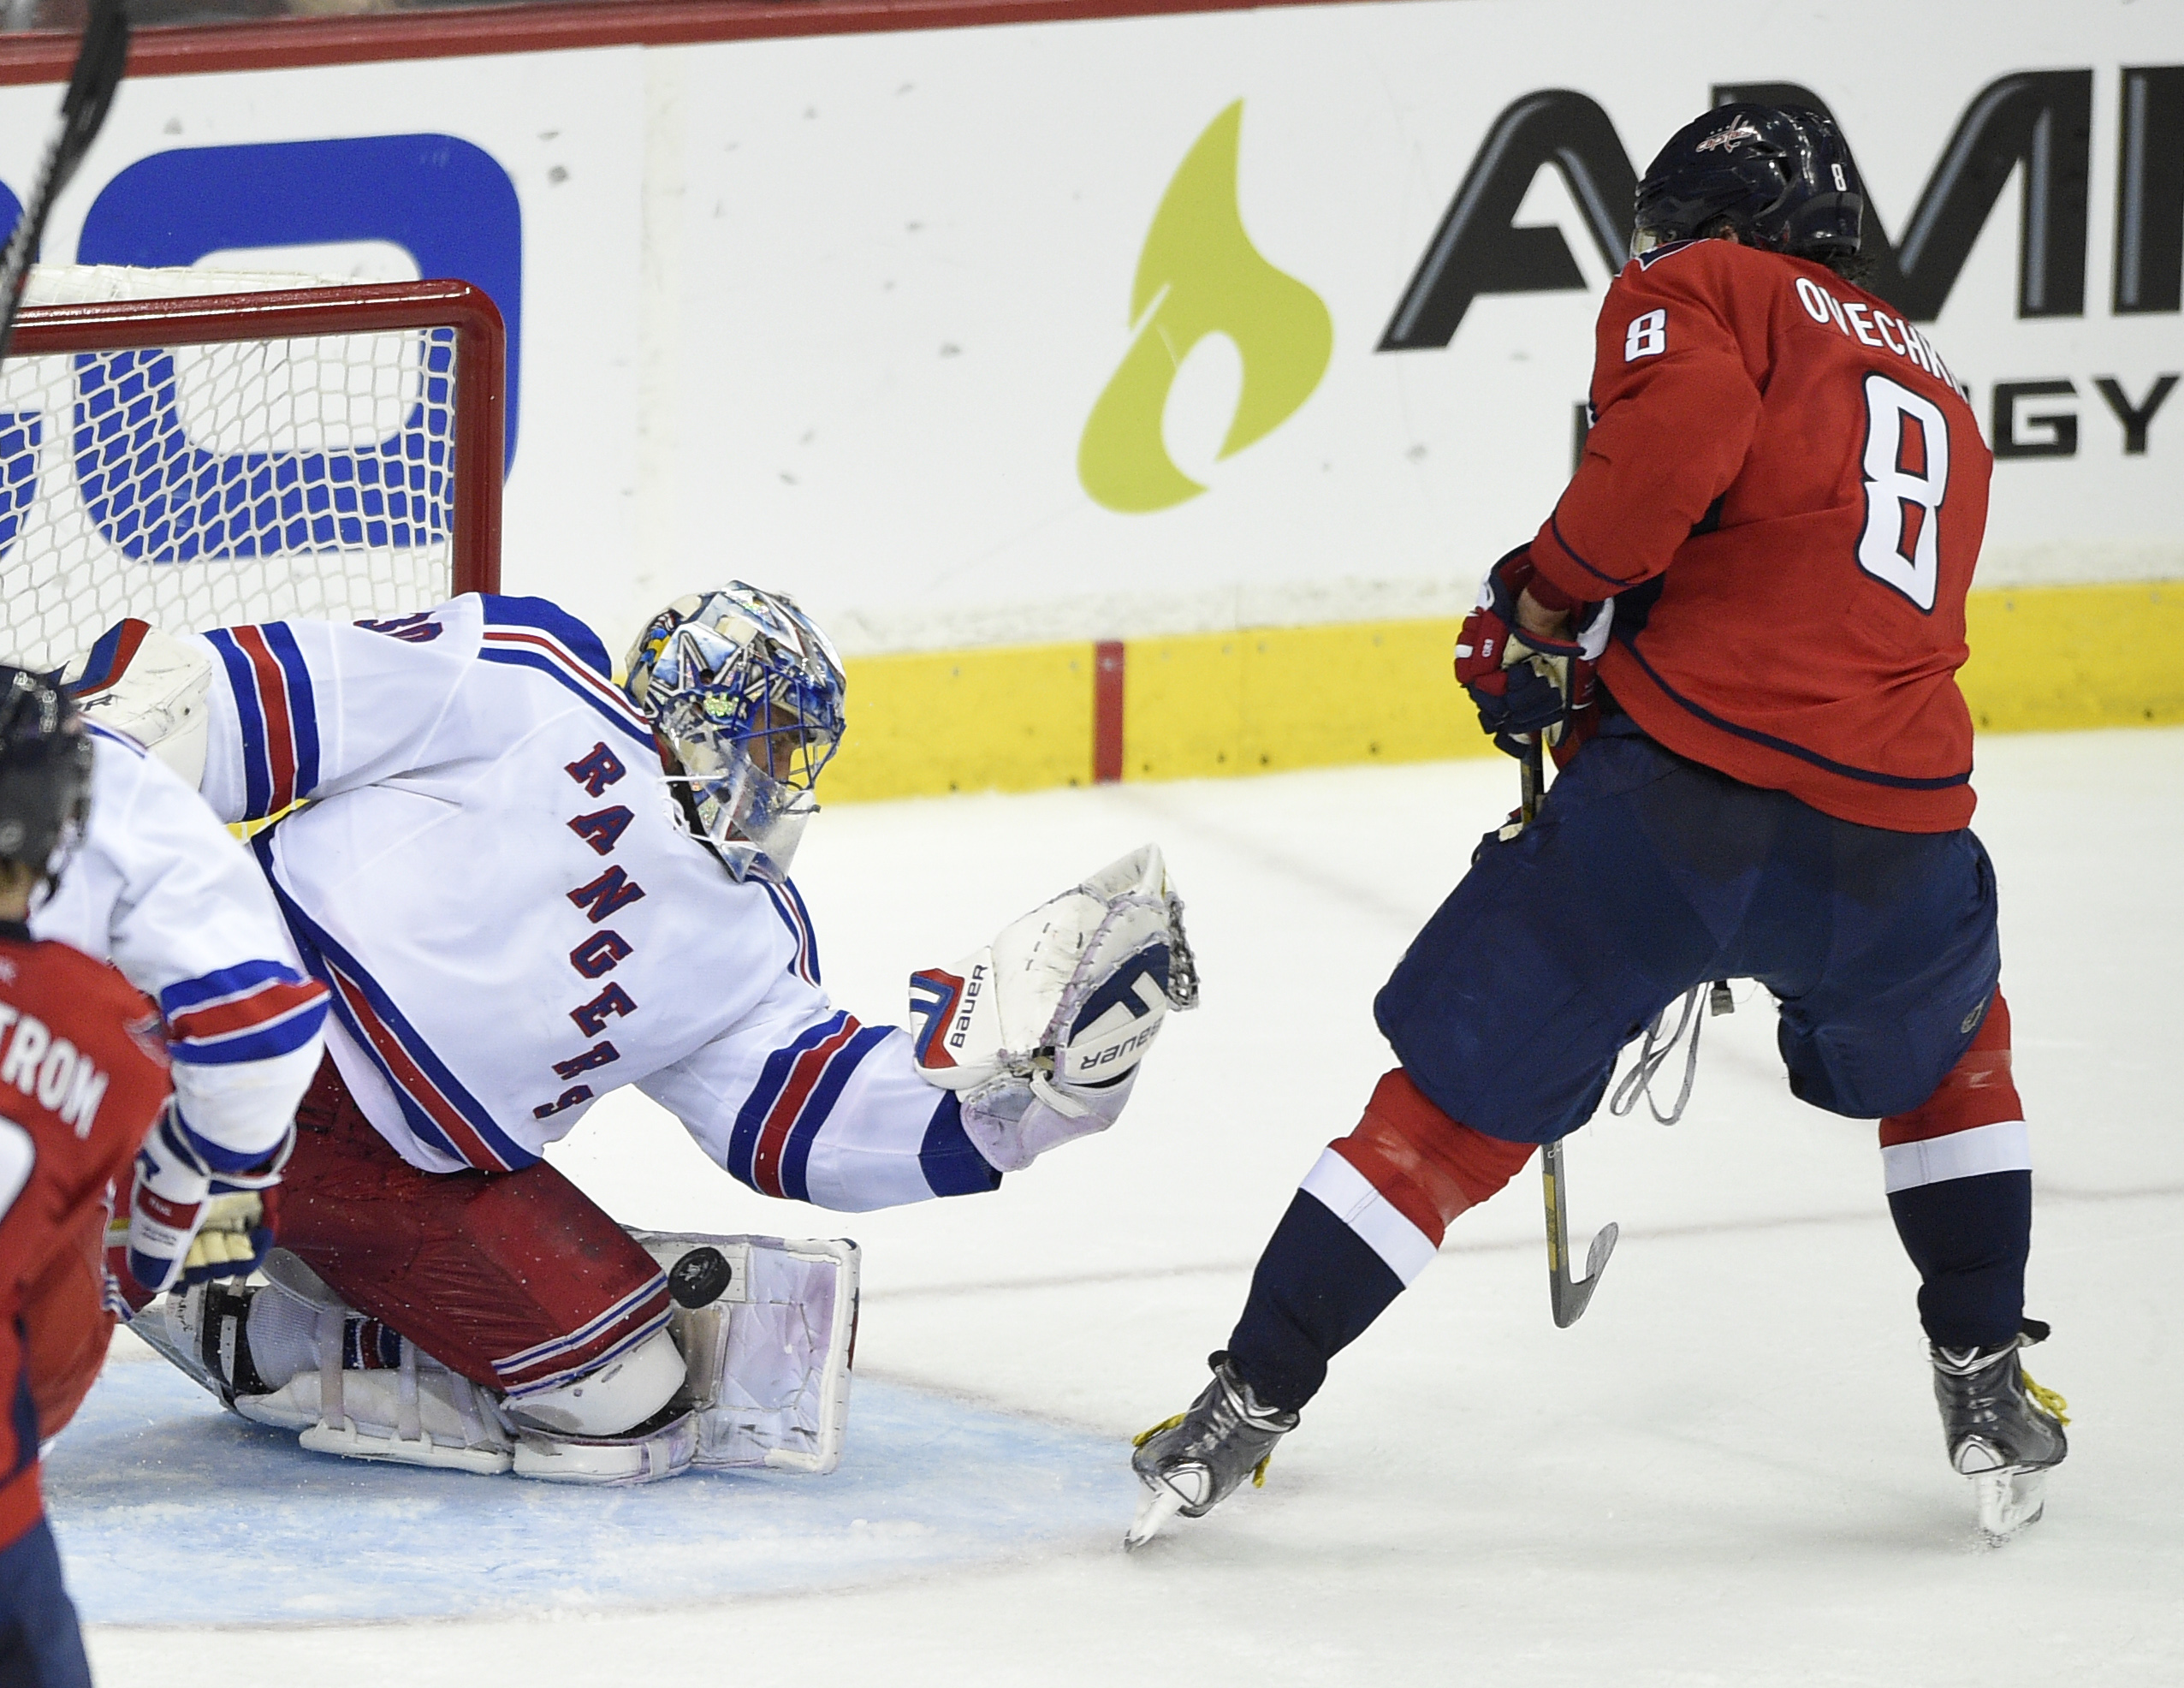 New York Rangers goalie Henrik Lundqvist (30), from Sweden, stops the puck against Washington Capitals left wing Alex Ovechkin (8), from Russia, during the third period of Game 6 in the second round of the NHL Stanley Cup hockey playoffs, Sunday, May 10,